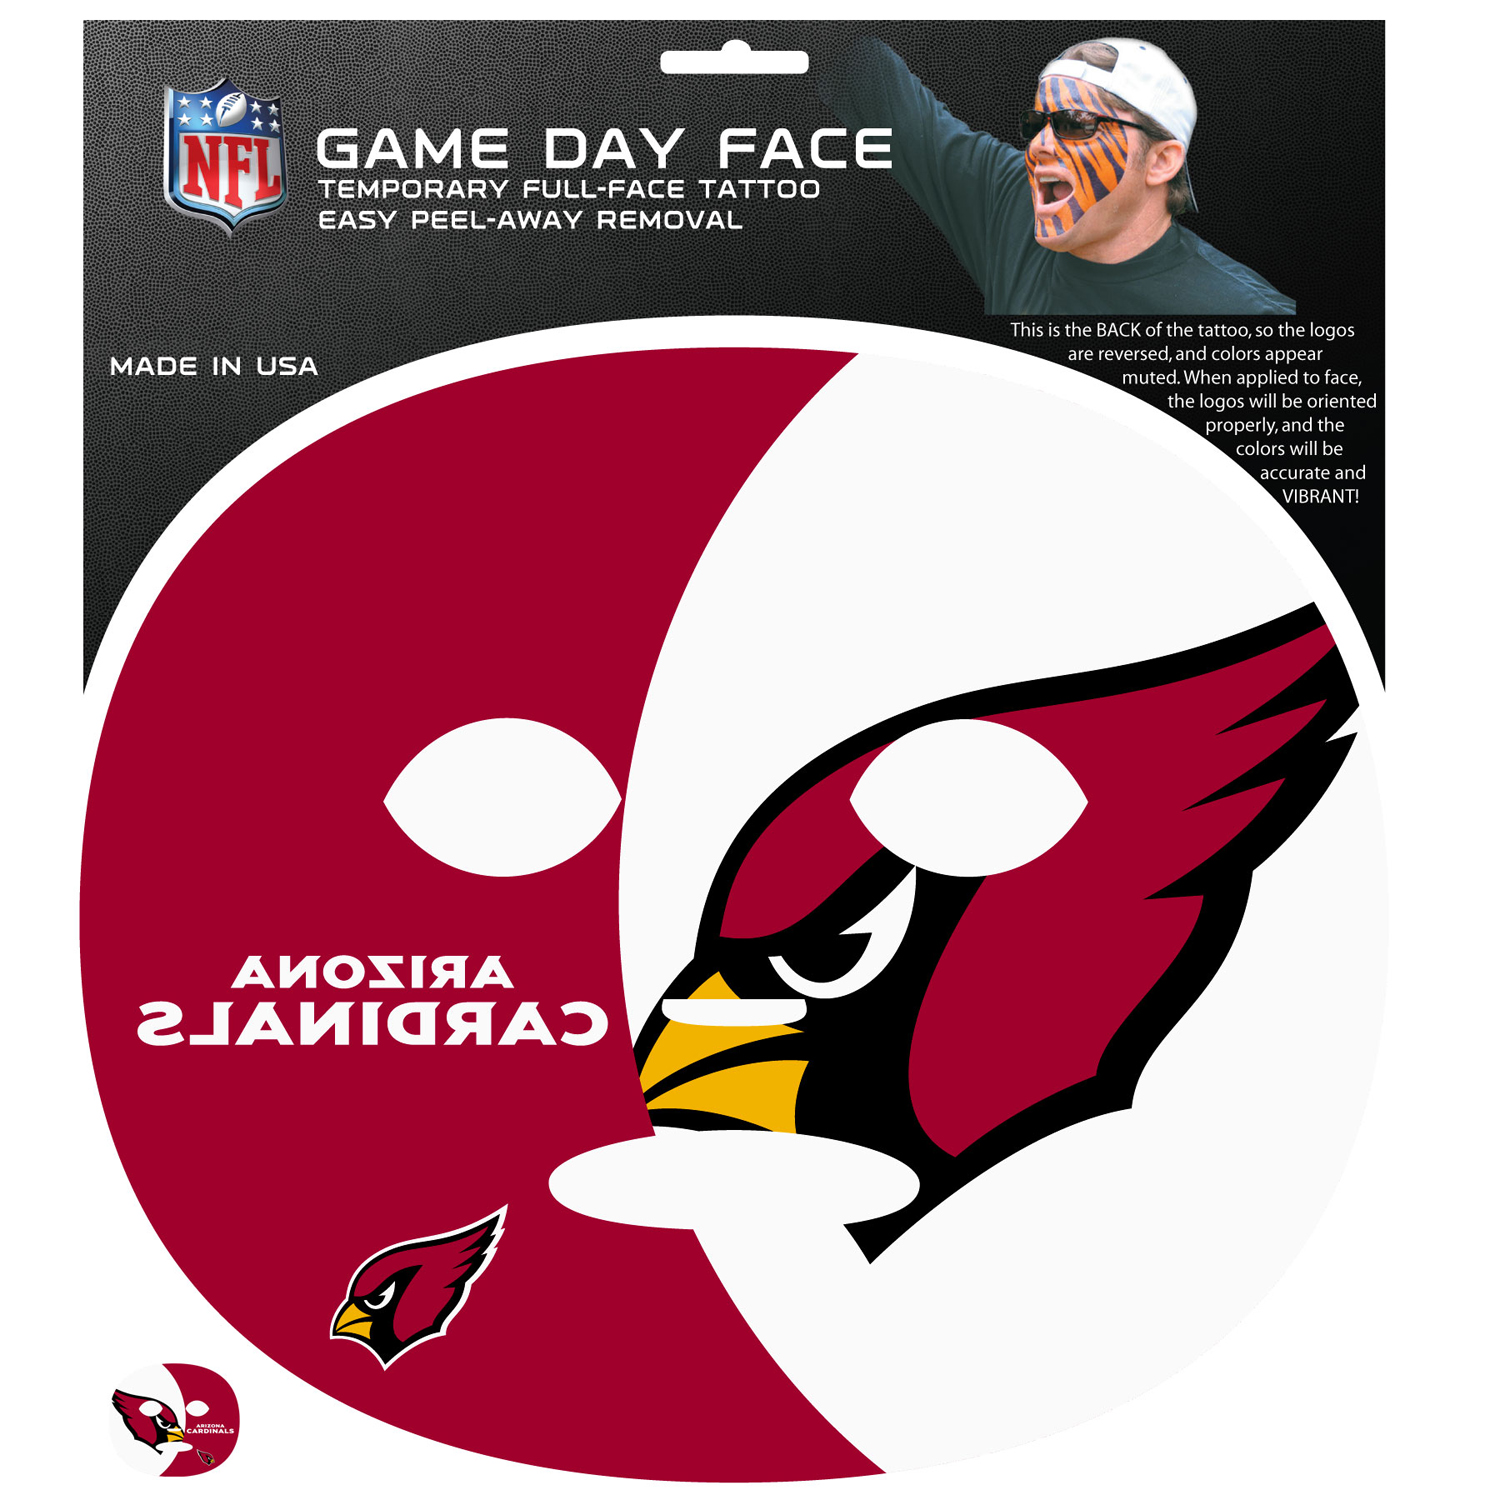 Arizona Cardinals Set of 8 Game Day Faces - No better way to show your team pride than by painting your face. Siskiyou's Game Day Face Temporary Tattoo isn't your typical face paint. It is a water based application that doesn't smudge, smear or sweat off while you're wearing it and easily peels off after you're done celebrating your team's big Win! The temporary tattoo is large enough to trim down to fit your face. Our Game Day Face Temporary Tattoo's are fun for fans of all ages. You may have seen our product before, these are the same Temporary Face Tattoos as pitched on ABC's Shark Tank.